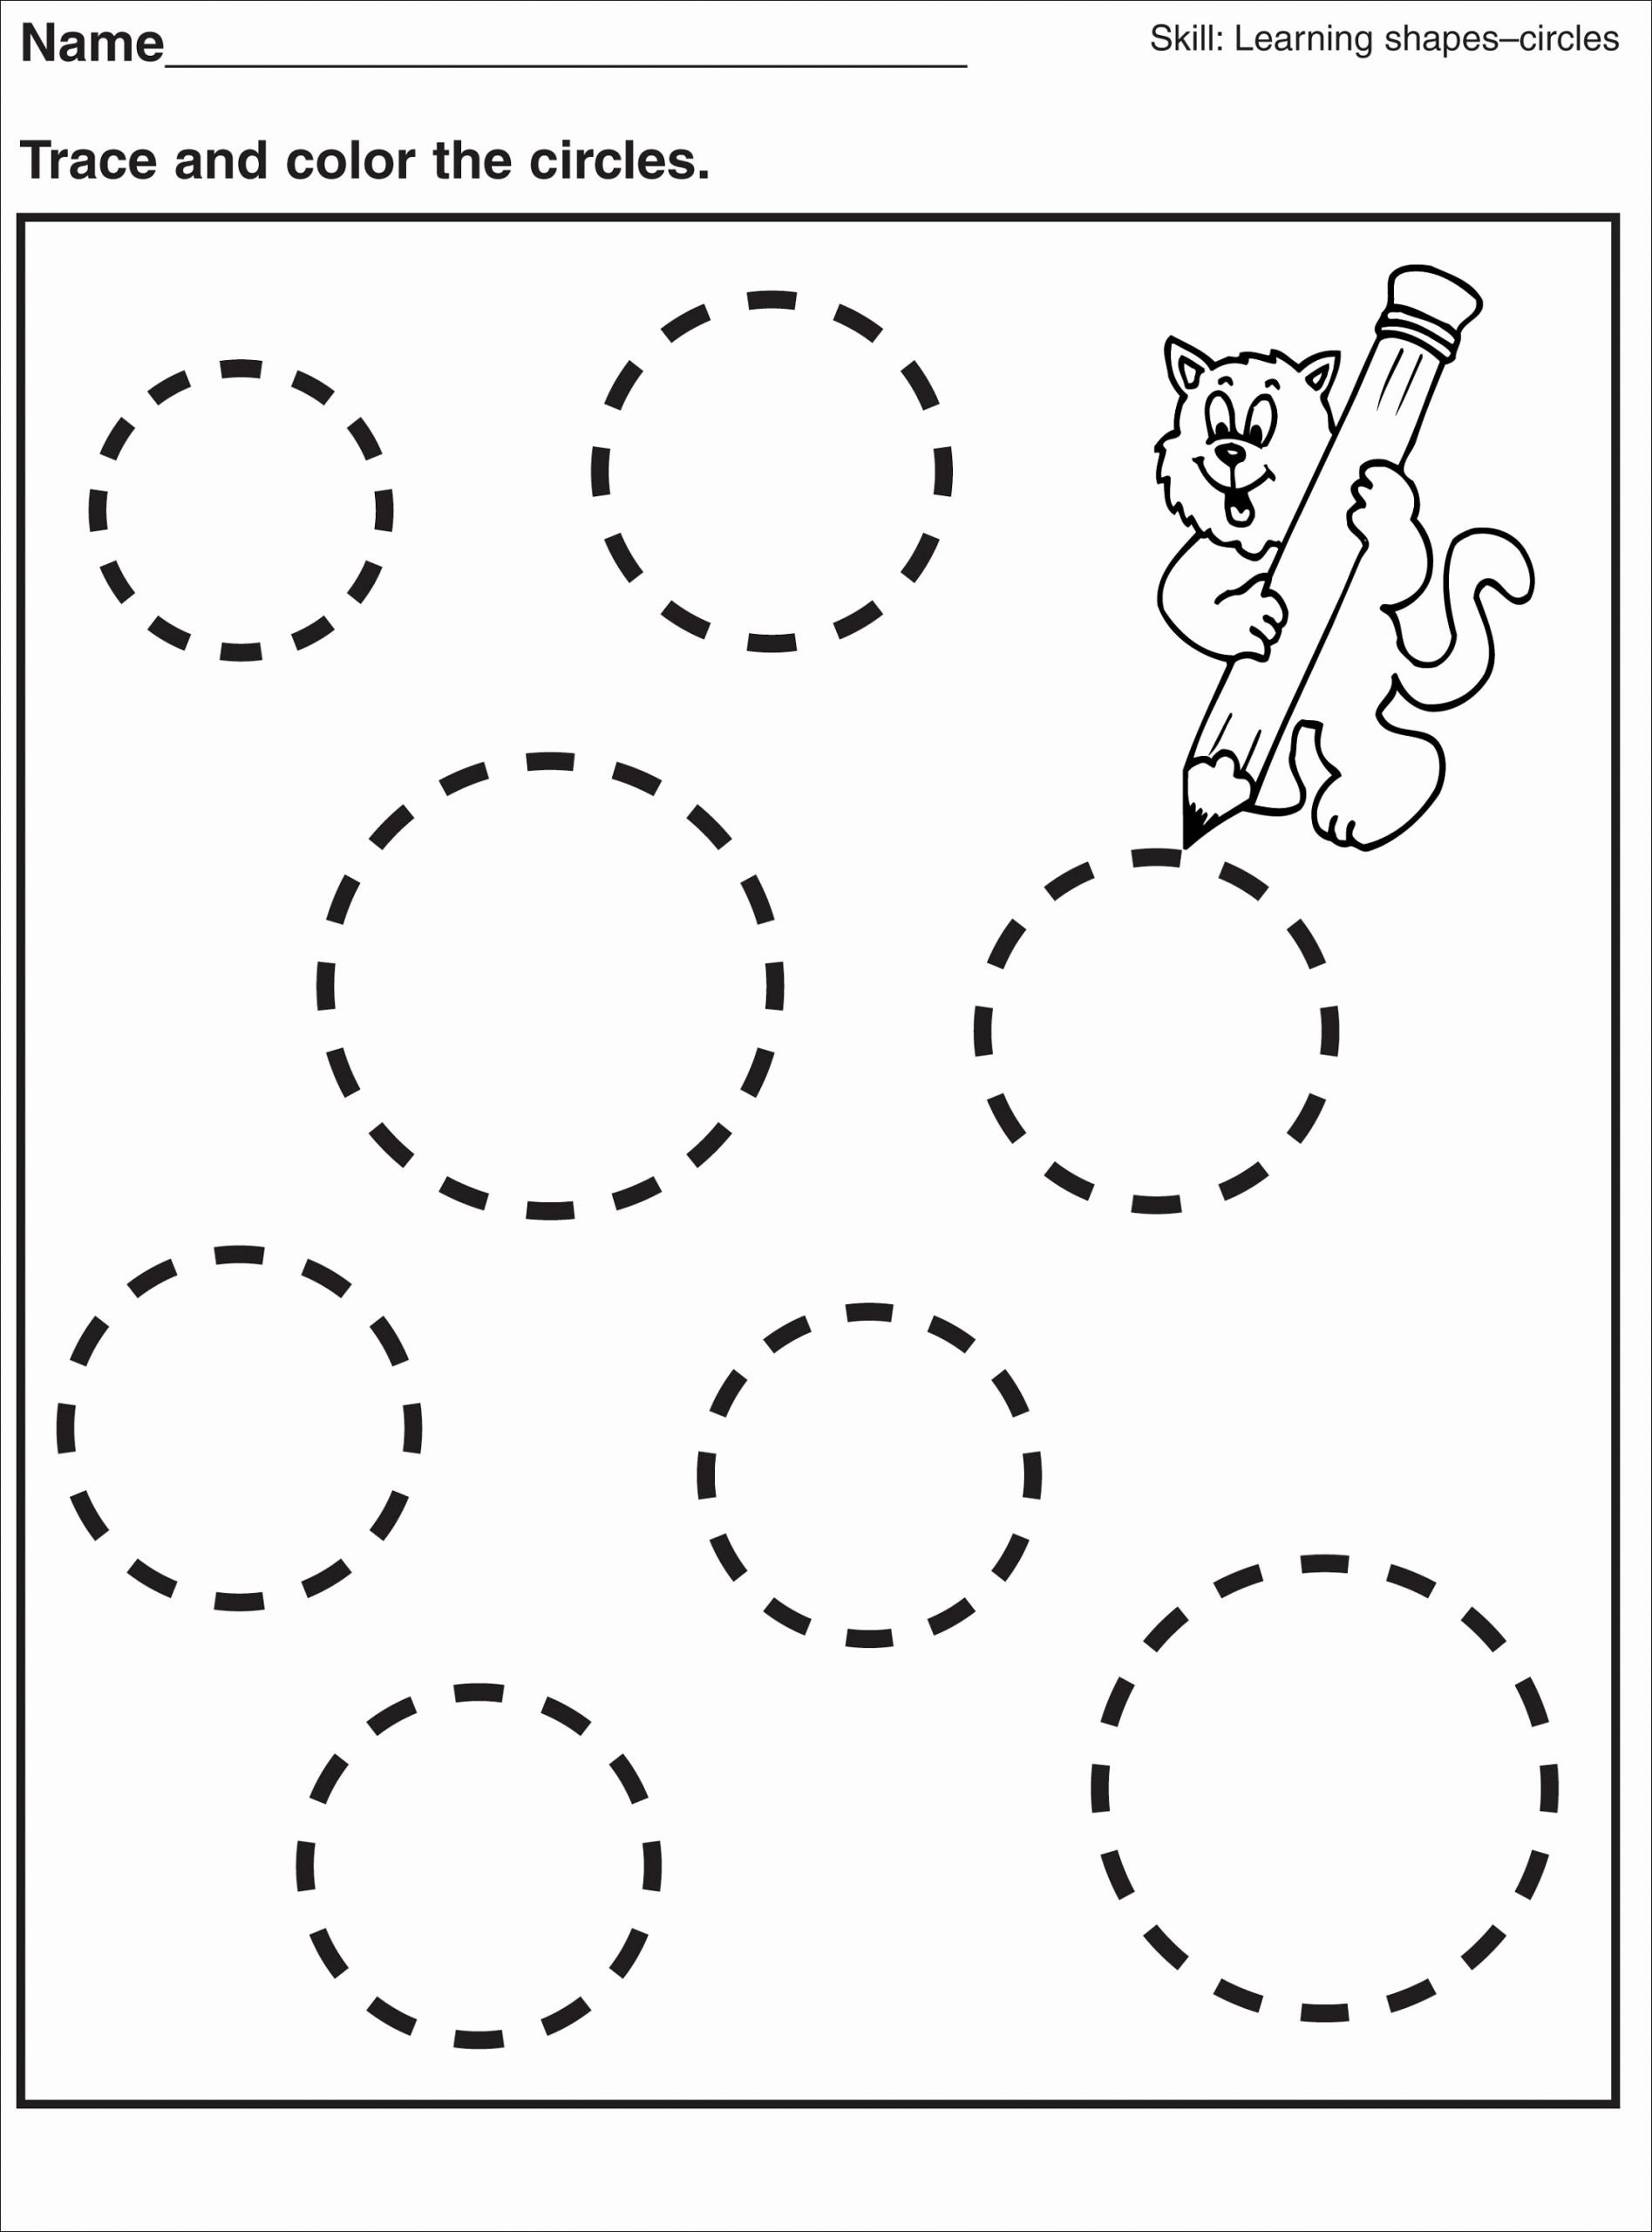 Circle Shape Worksheets for Preschoolers Free Tracing Pages for Preschool